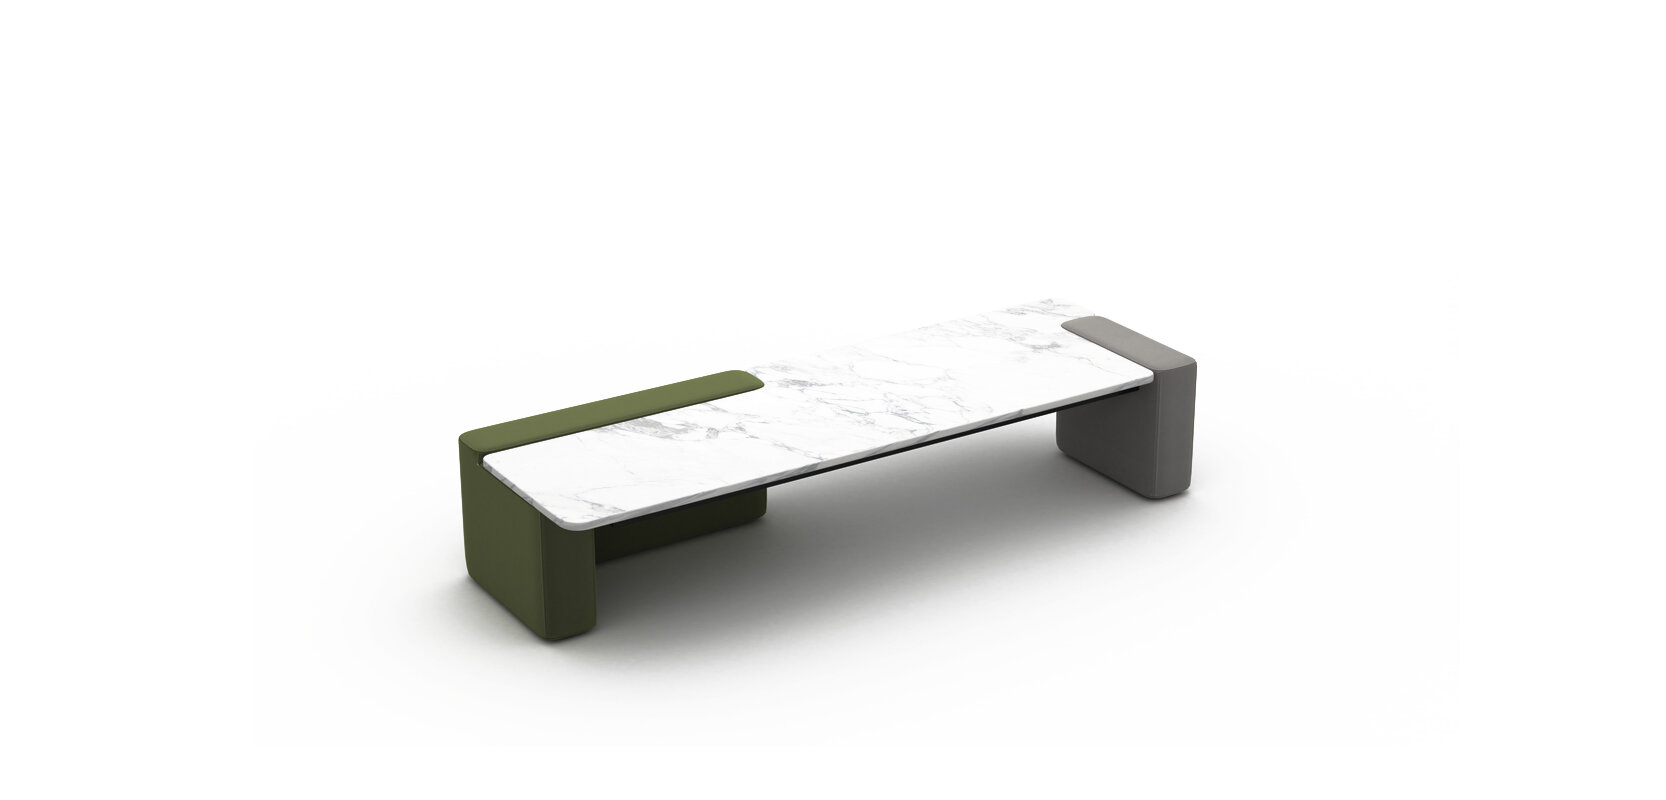 RUBATO COFFEE TABLE BRAND:  FRANK CHOU  WEB:  www.frankchou.com Rubato Coffee Table is full of imagination, the innovative combination of marble and soft package technology shows a new attempt in modern furniture design.